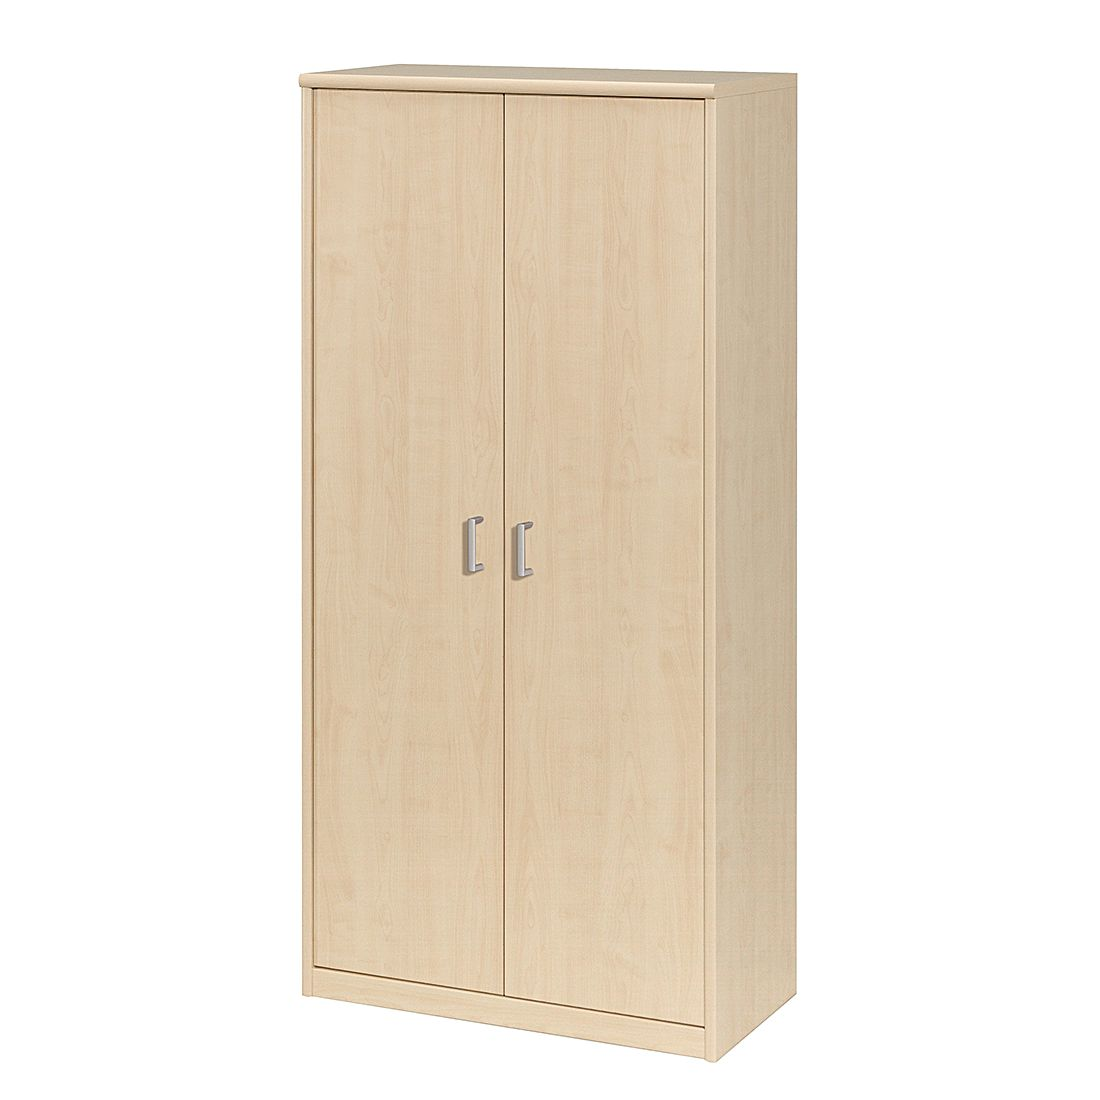 mehrzweckschrank soft plus iv ahorn dekor. Black Bedroom Furniture Sets. Home Design Ideas